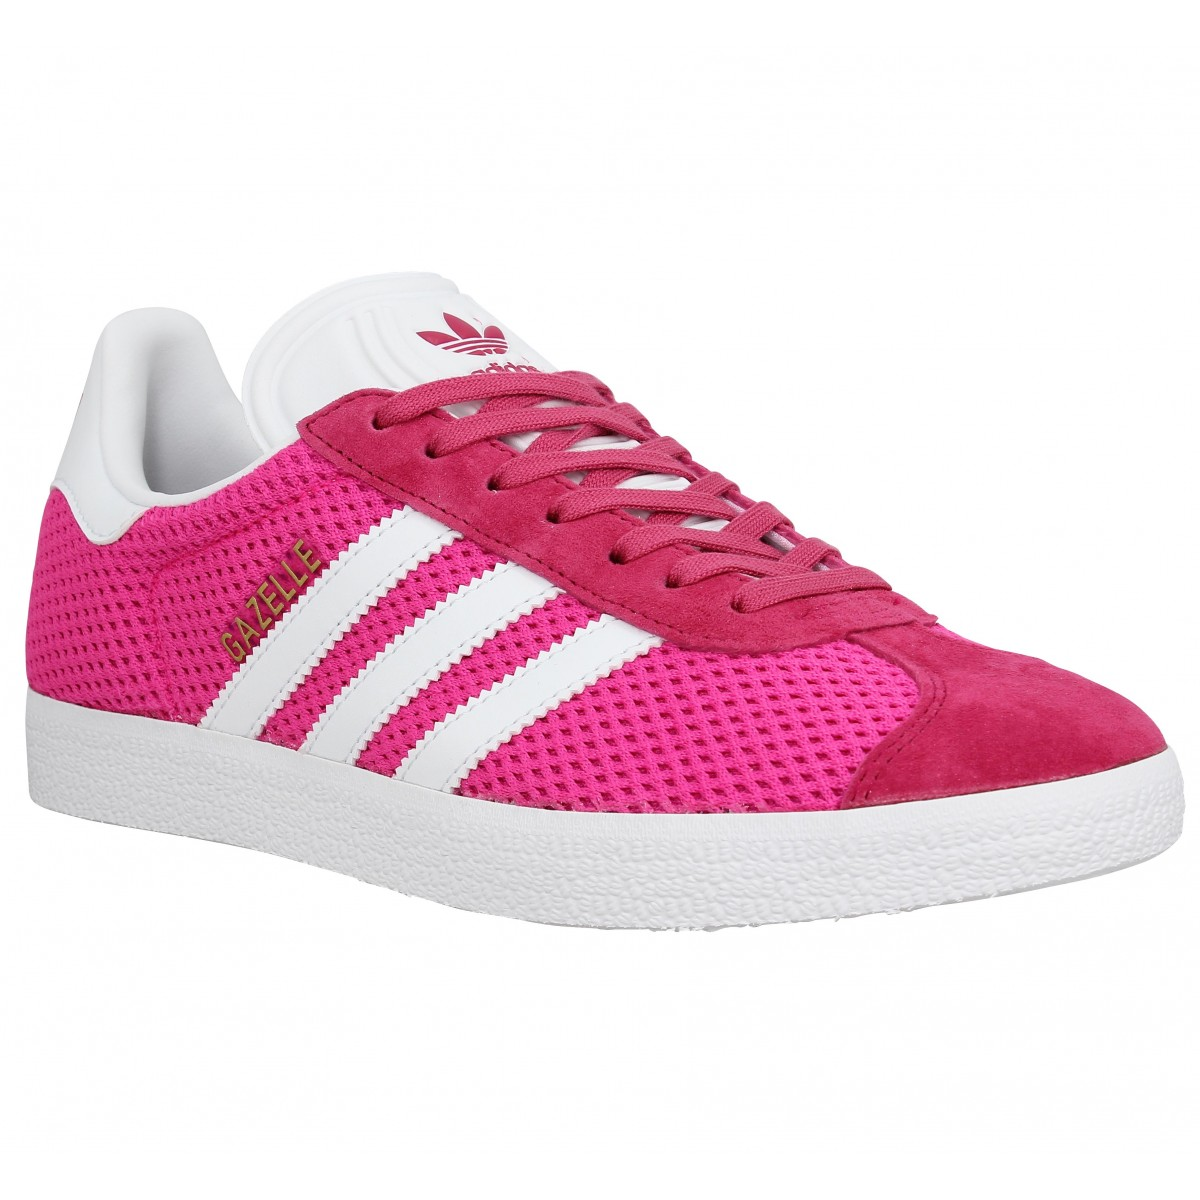 Baskets ADIDAS Gazelle knit Femme Rose